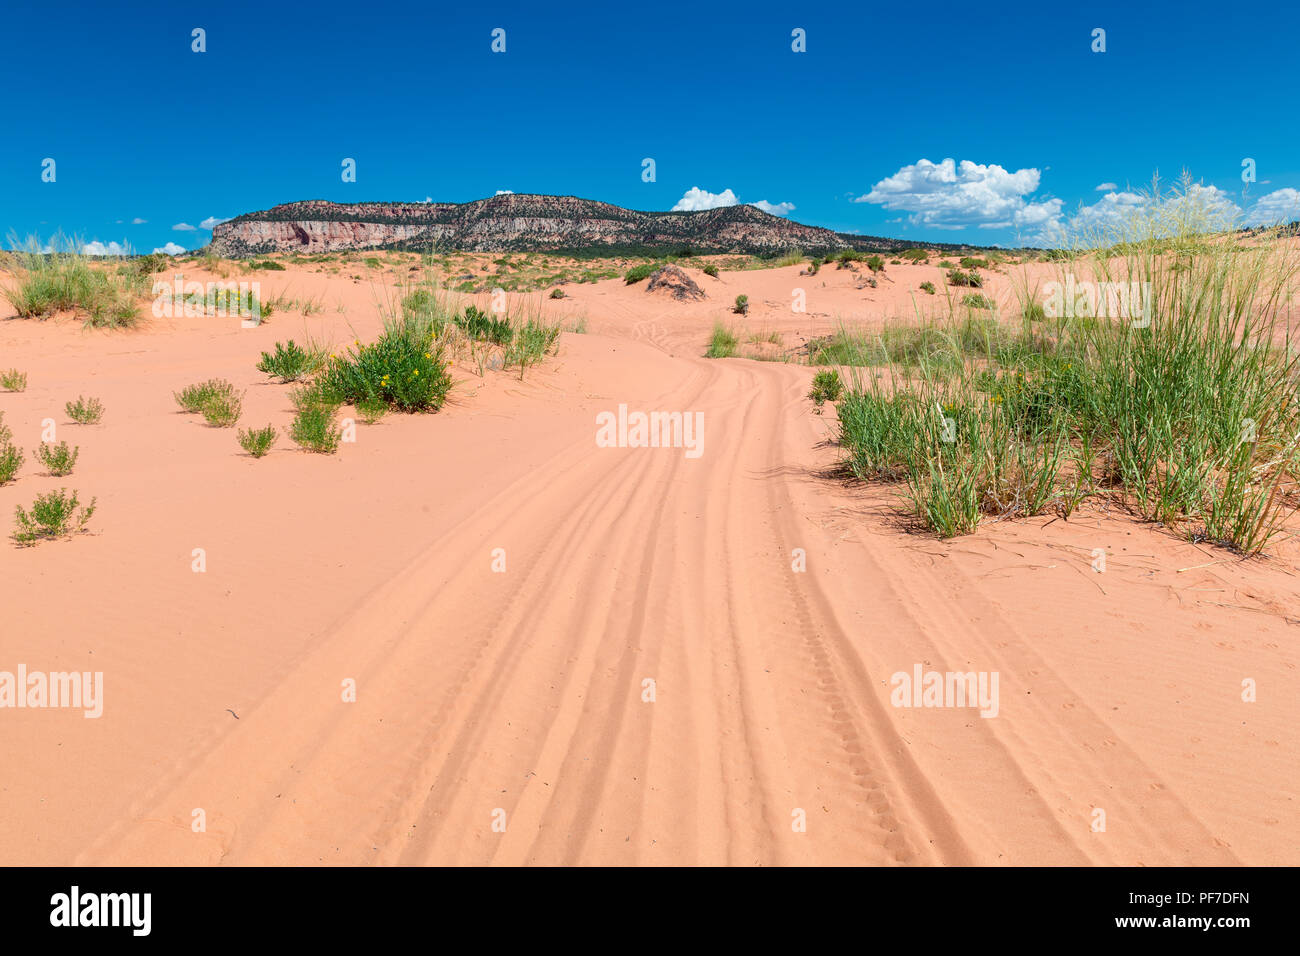 Road in the sand dunes of the desert - Stock Image